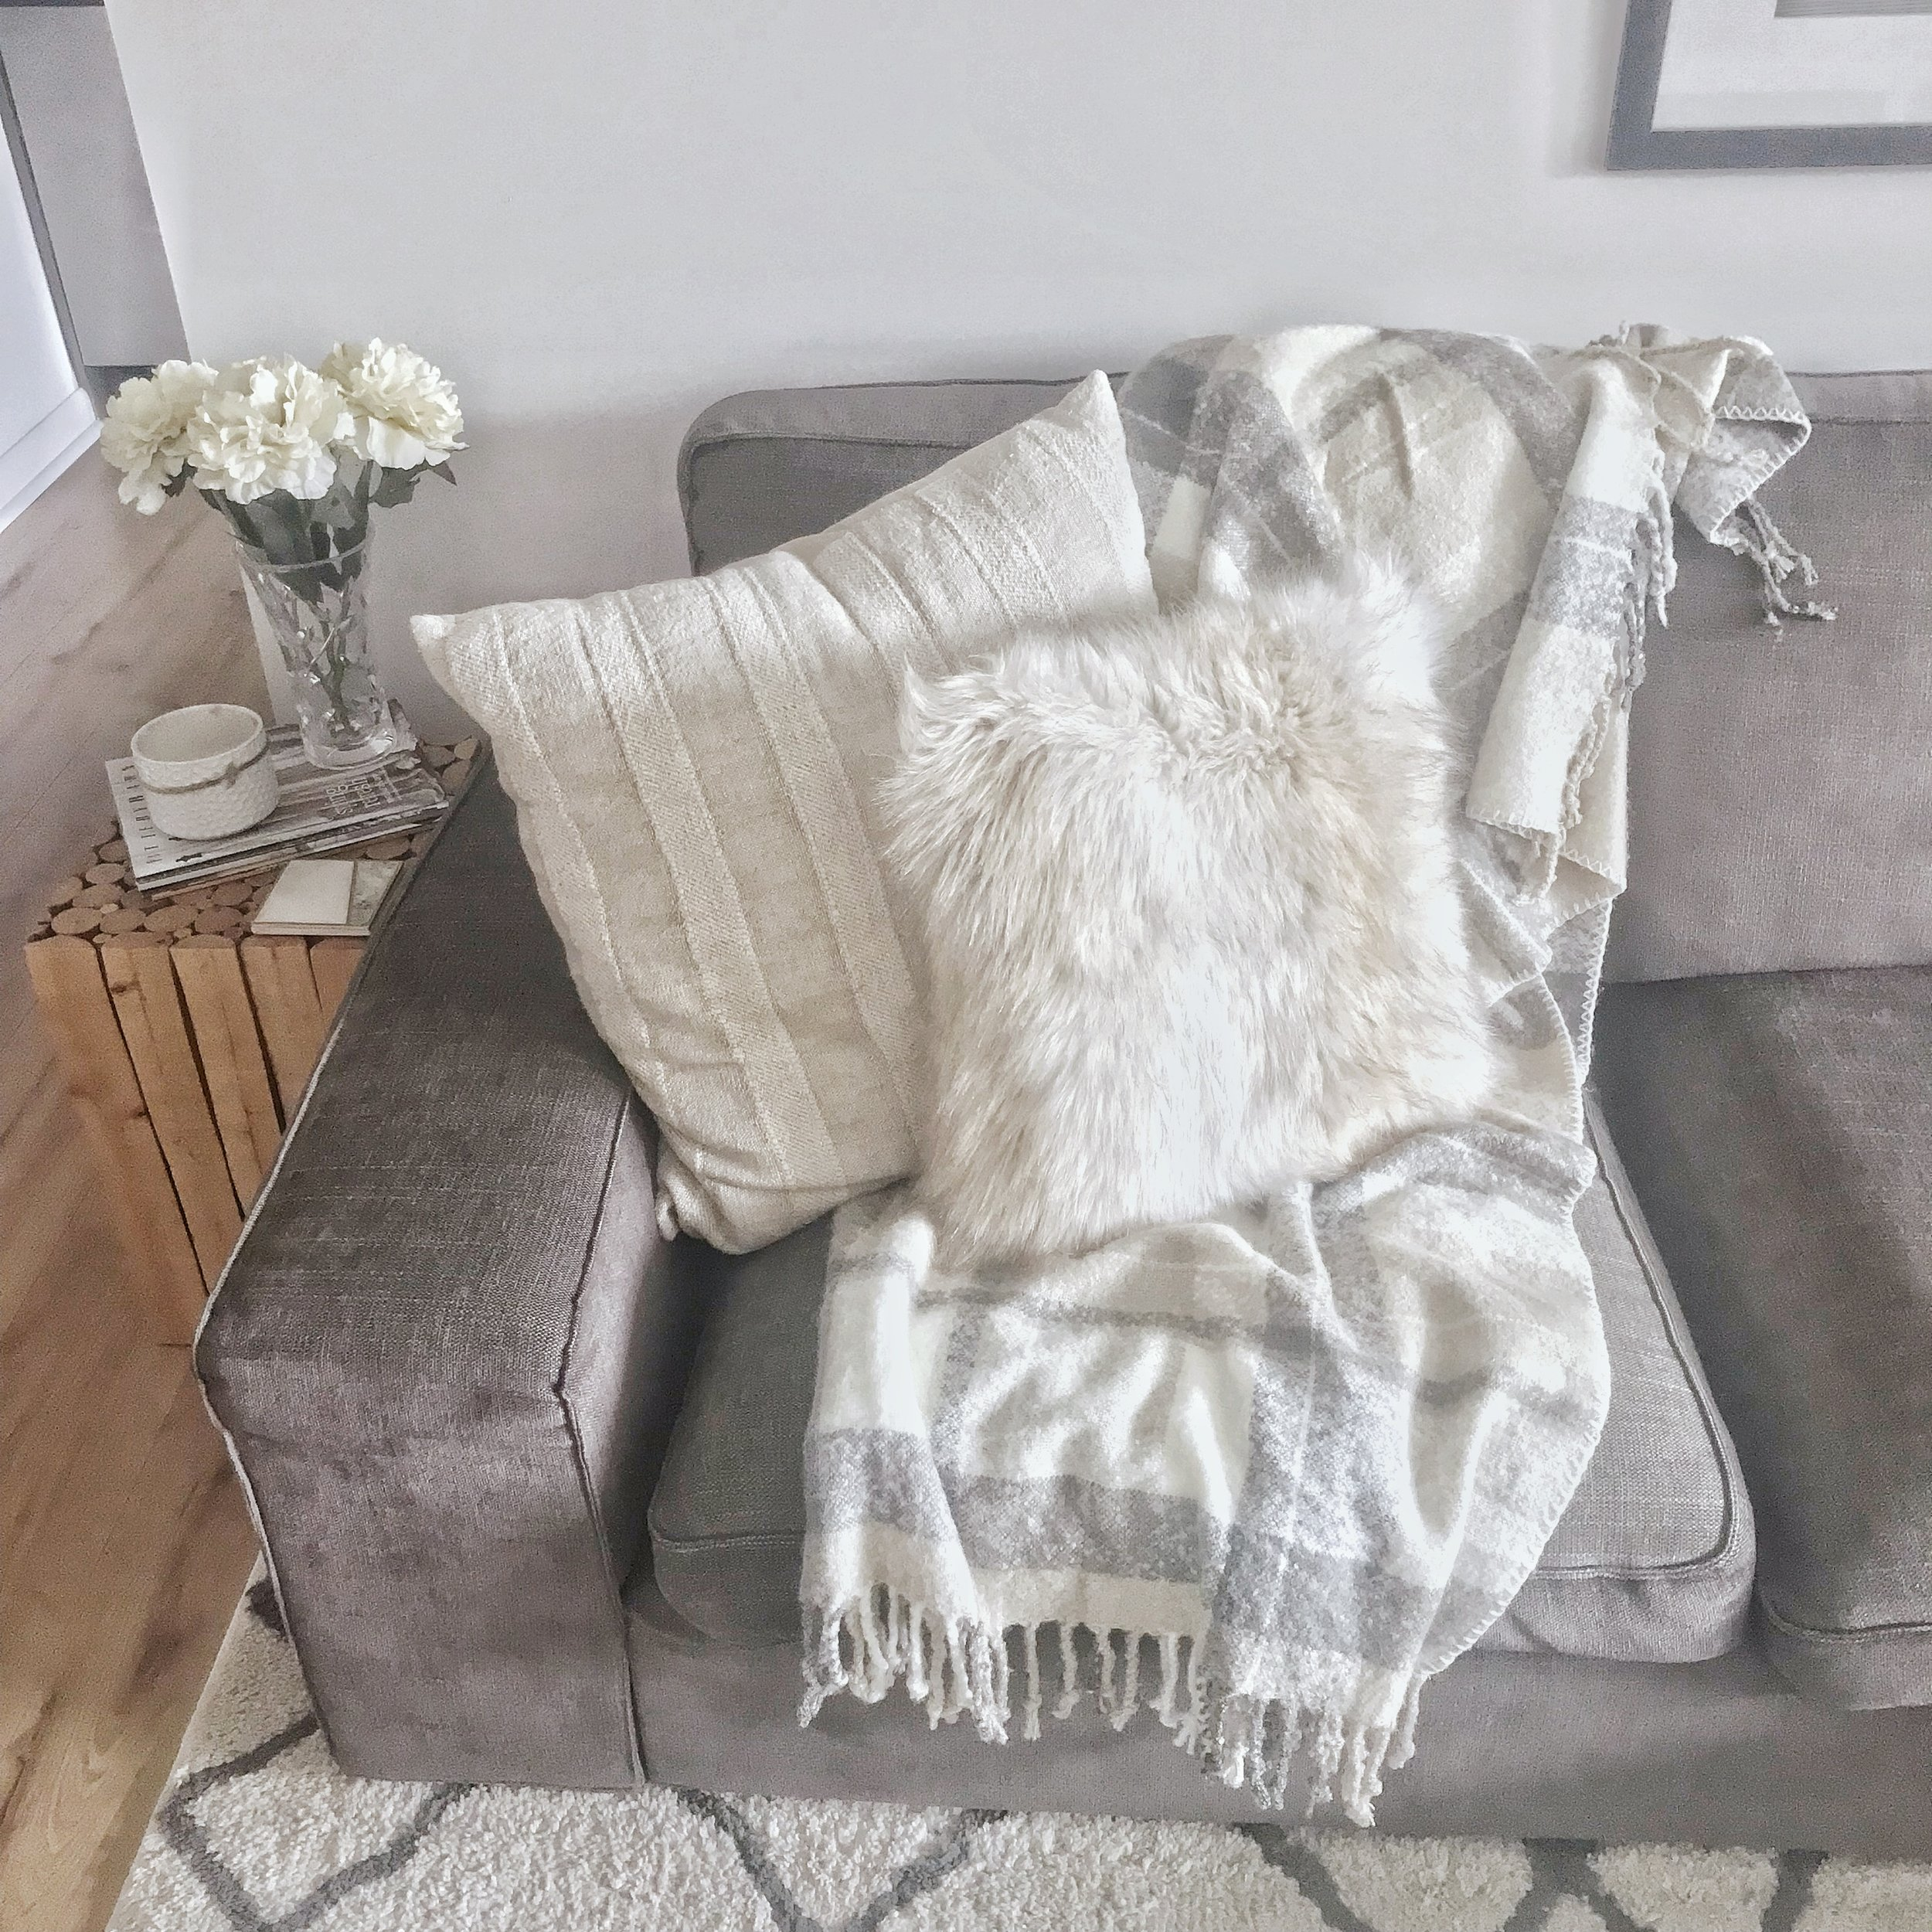 How To: Style a Throw Blanket — The Life She Wanders